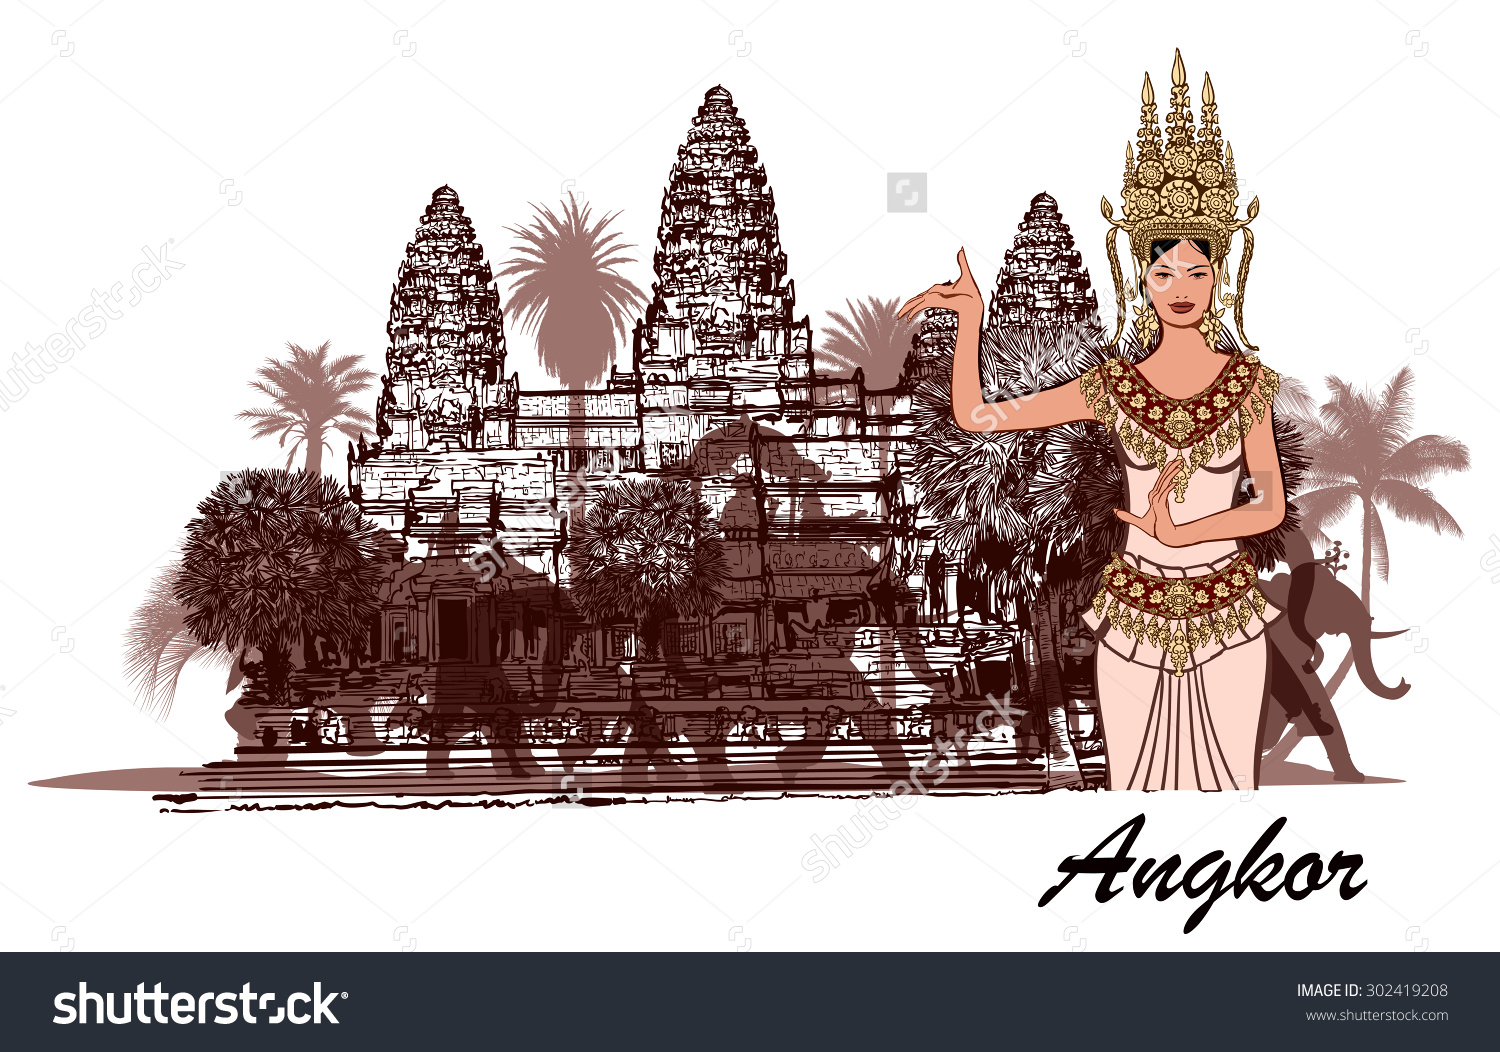 Angkor Wat Elephants Palm Trees Apsara Stock Vector 302419208.